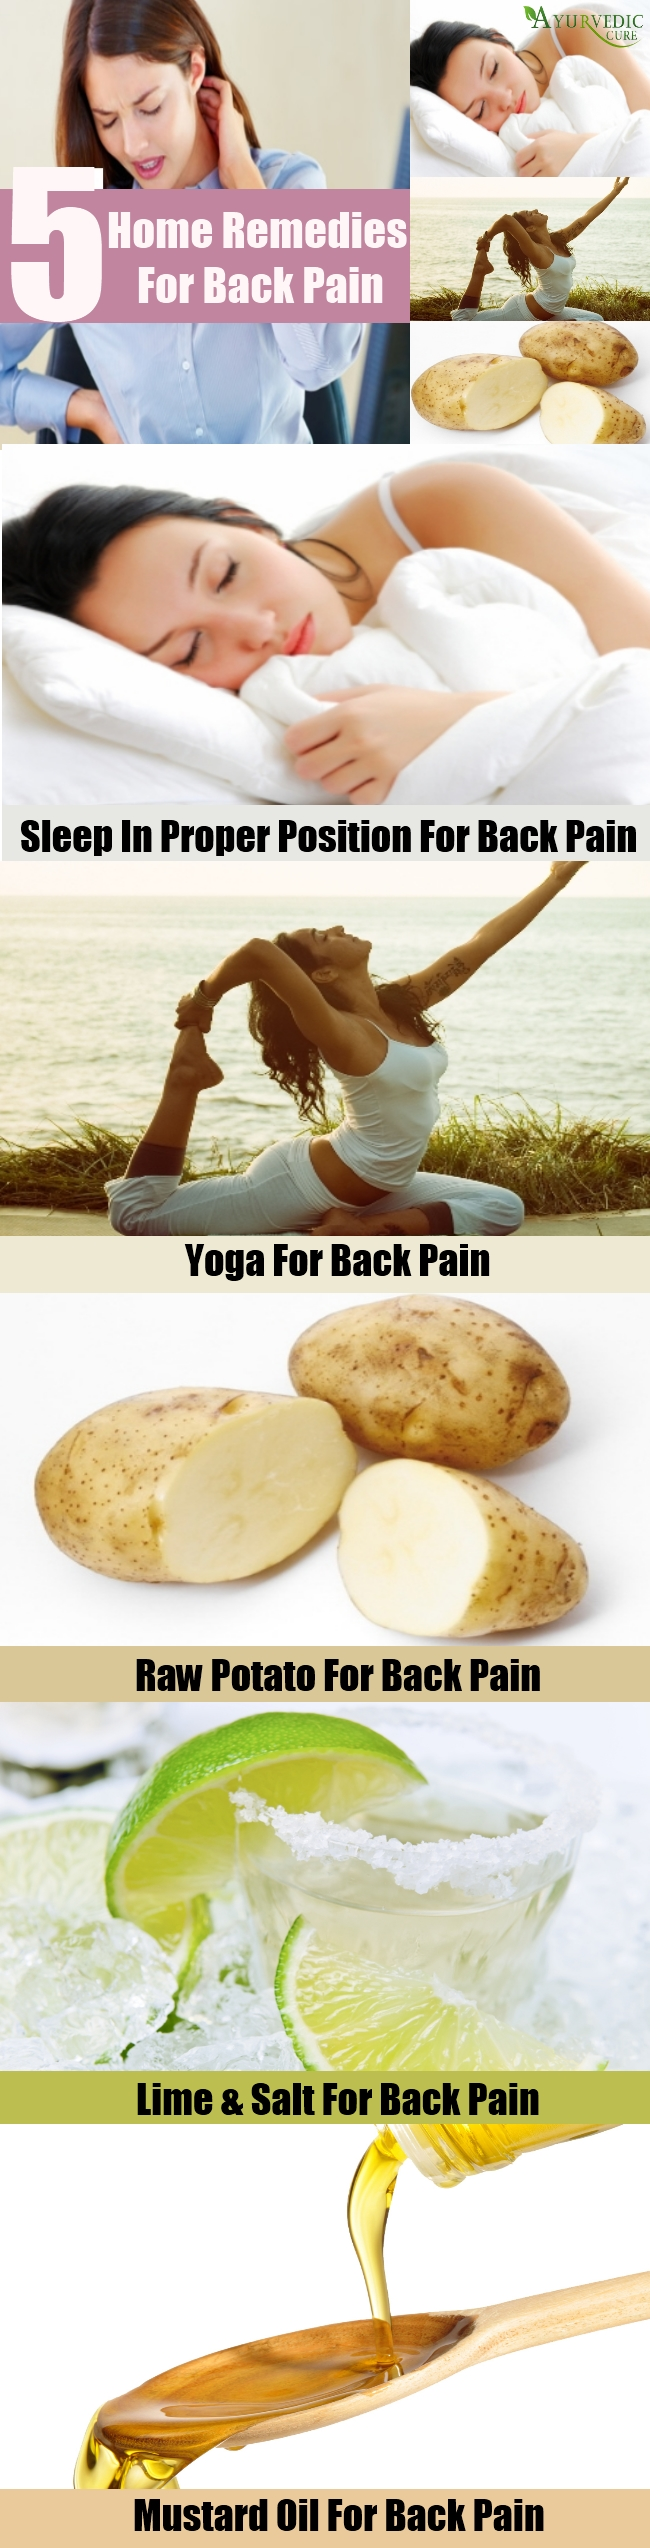 Top 5 Home Remedies For Back Pain